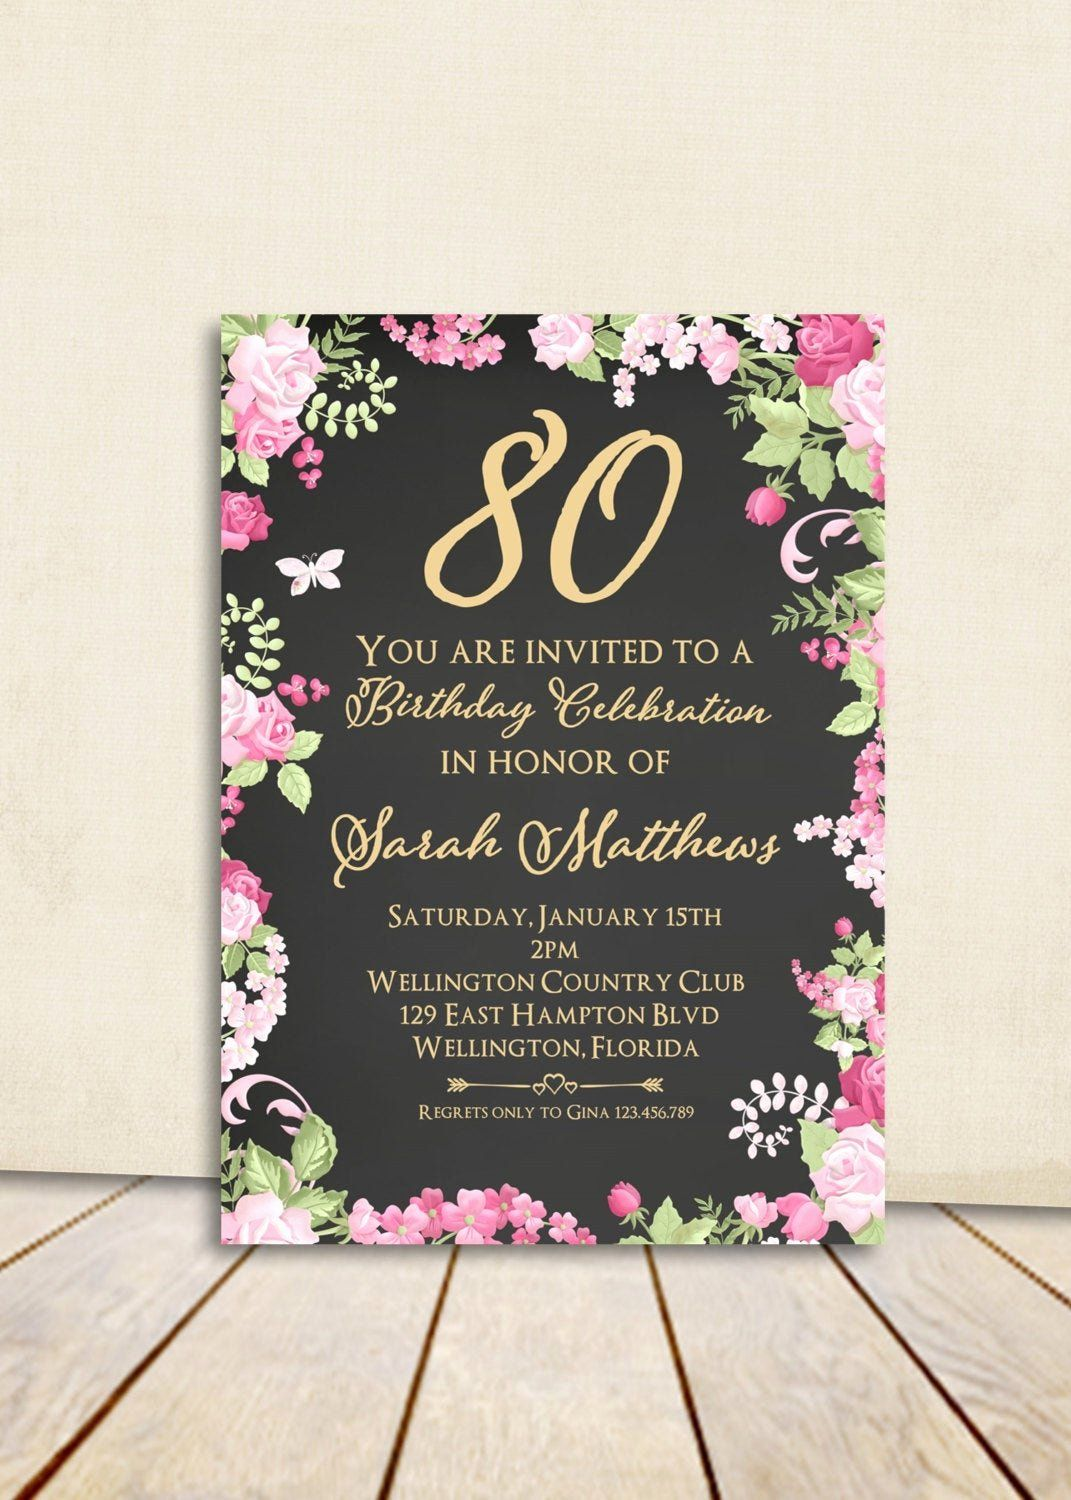 80th Birthday Party Invitations Elegant Cottage Chic Chalkboard 80th Bir 80th Birthday Invitations Milestone Birthday Invitations Birthday Invitation Templates